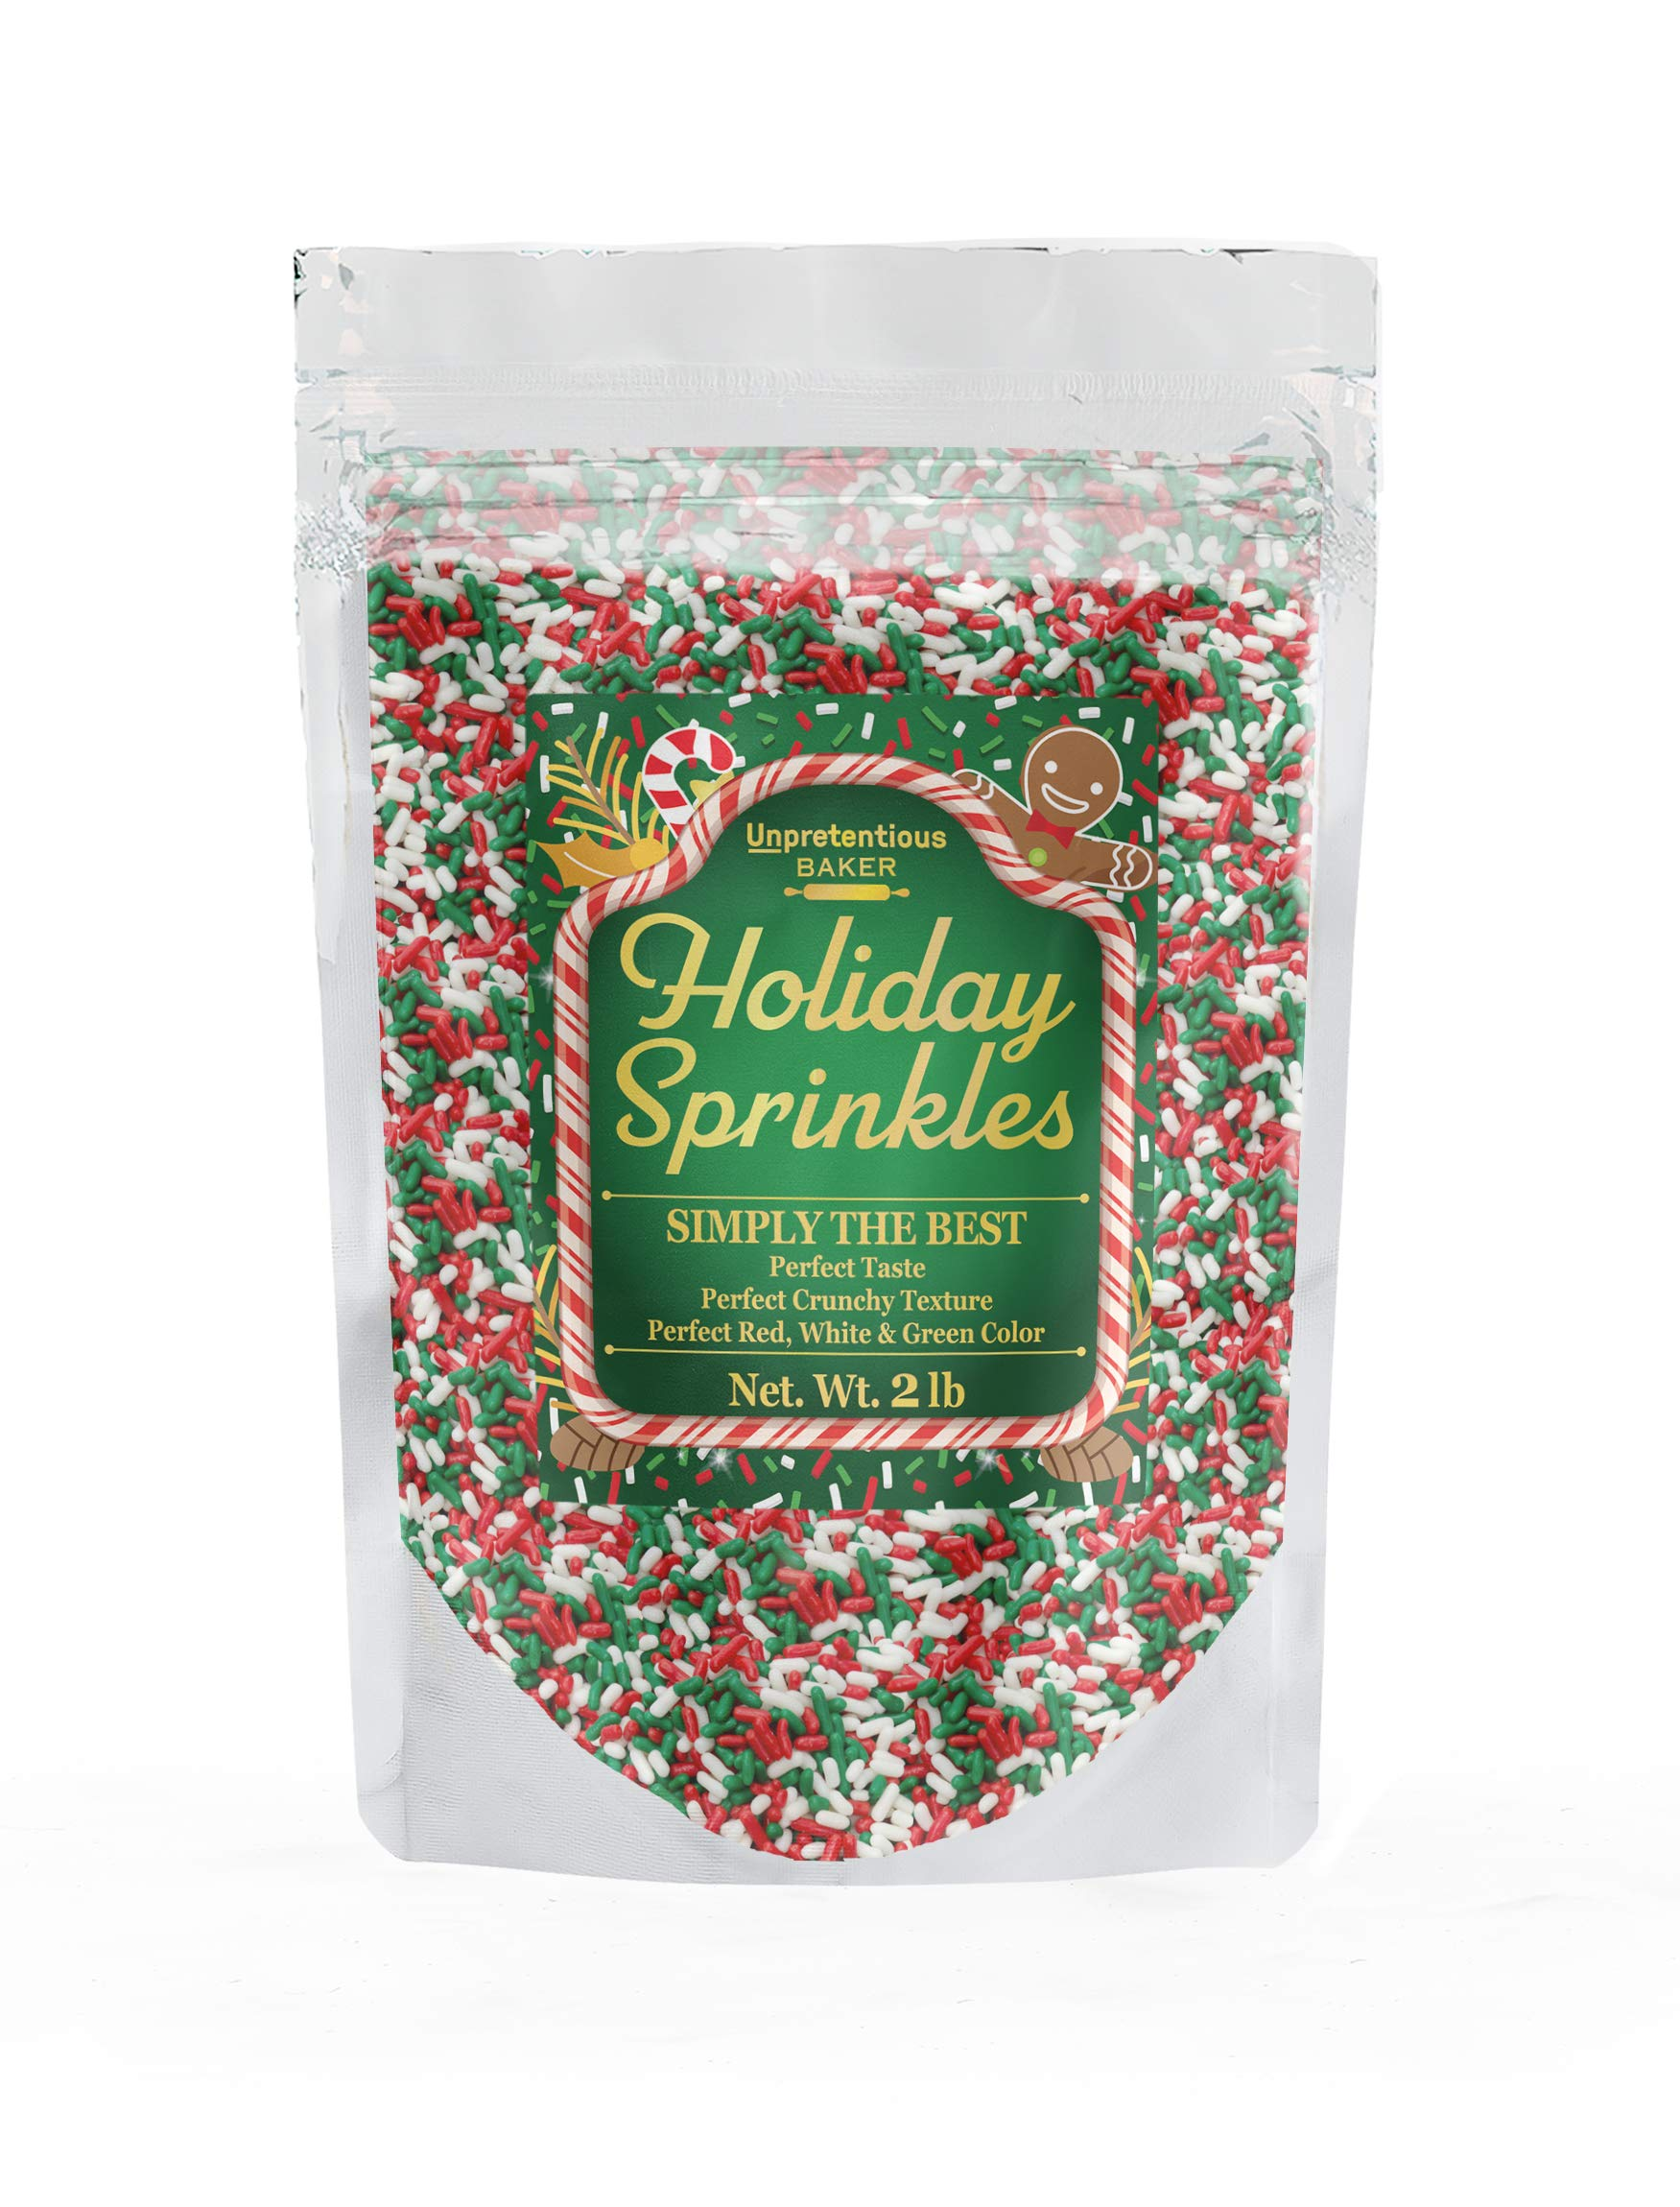 Holiday Sprinkles, 2 lbs. by Unpretentious Baker, Kosher, Gluten Free, Red, White & Green Christmas Sprinkles/Jimmies by Unpretentious Baker